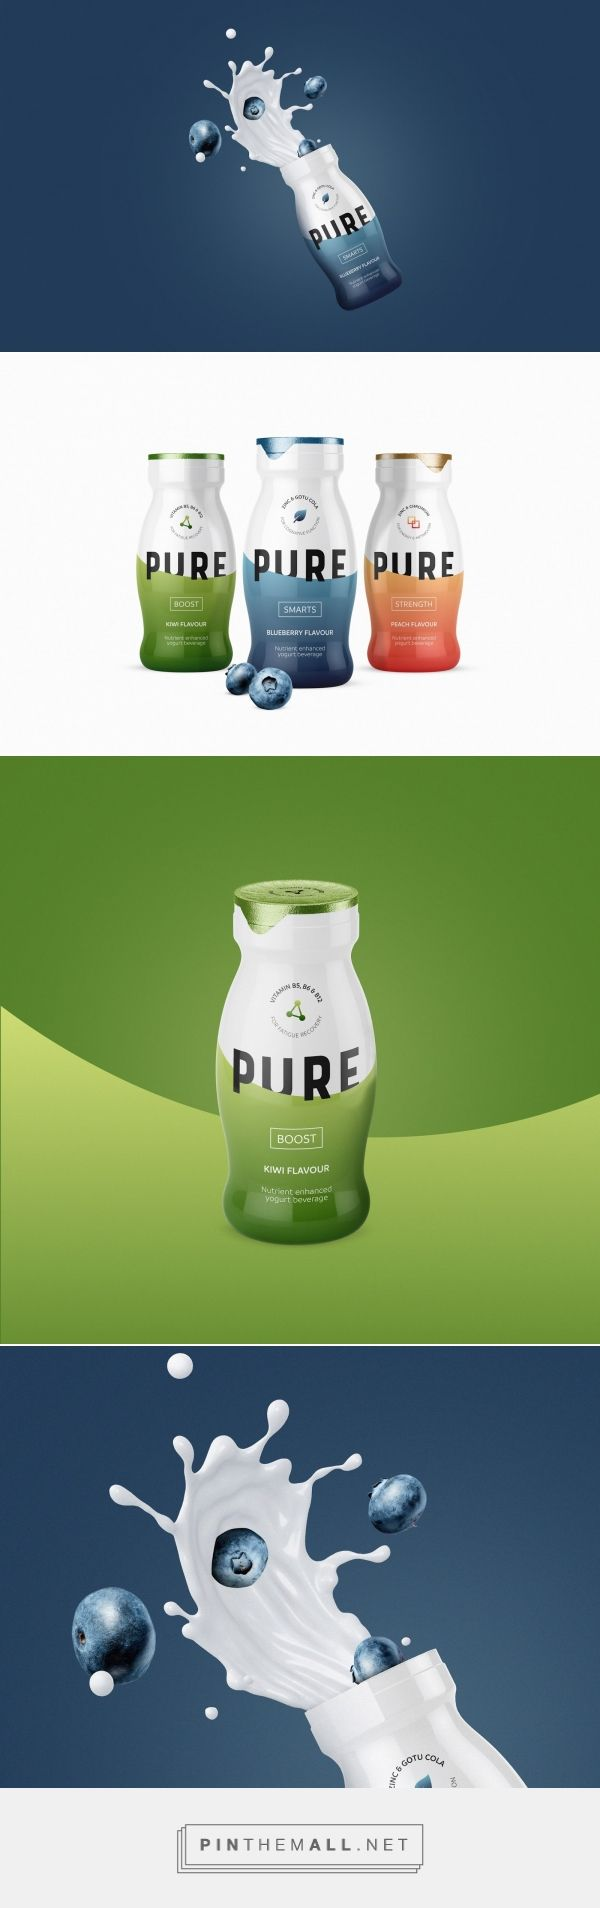 Pure Yoghurt Beverage - Packaging of the World - Creative Package Design Gallery - http://www.packagingoftheworld.com/2017/05/pure-yoghurt-beverage.html